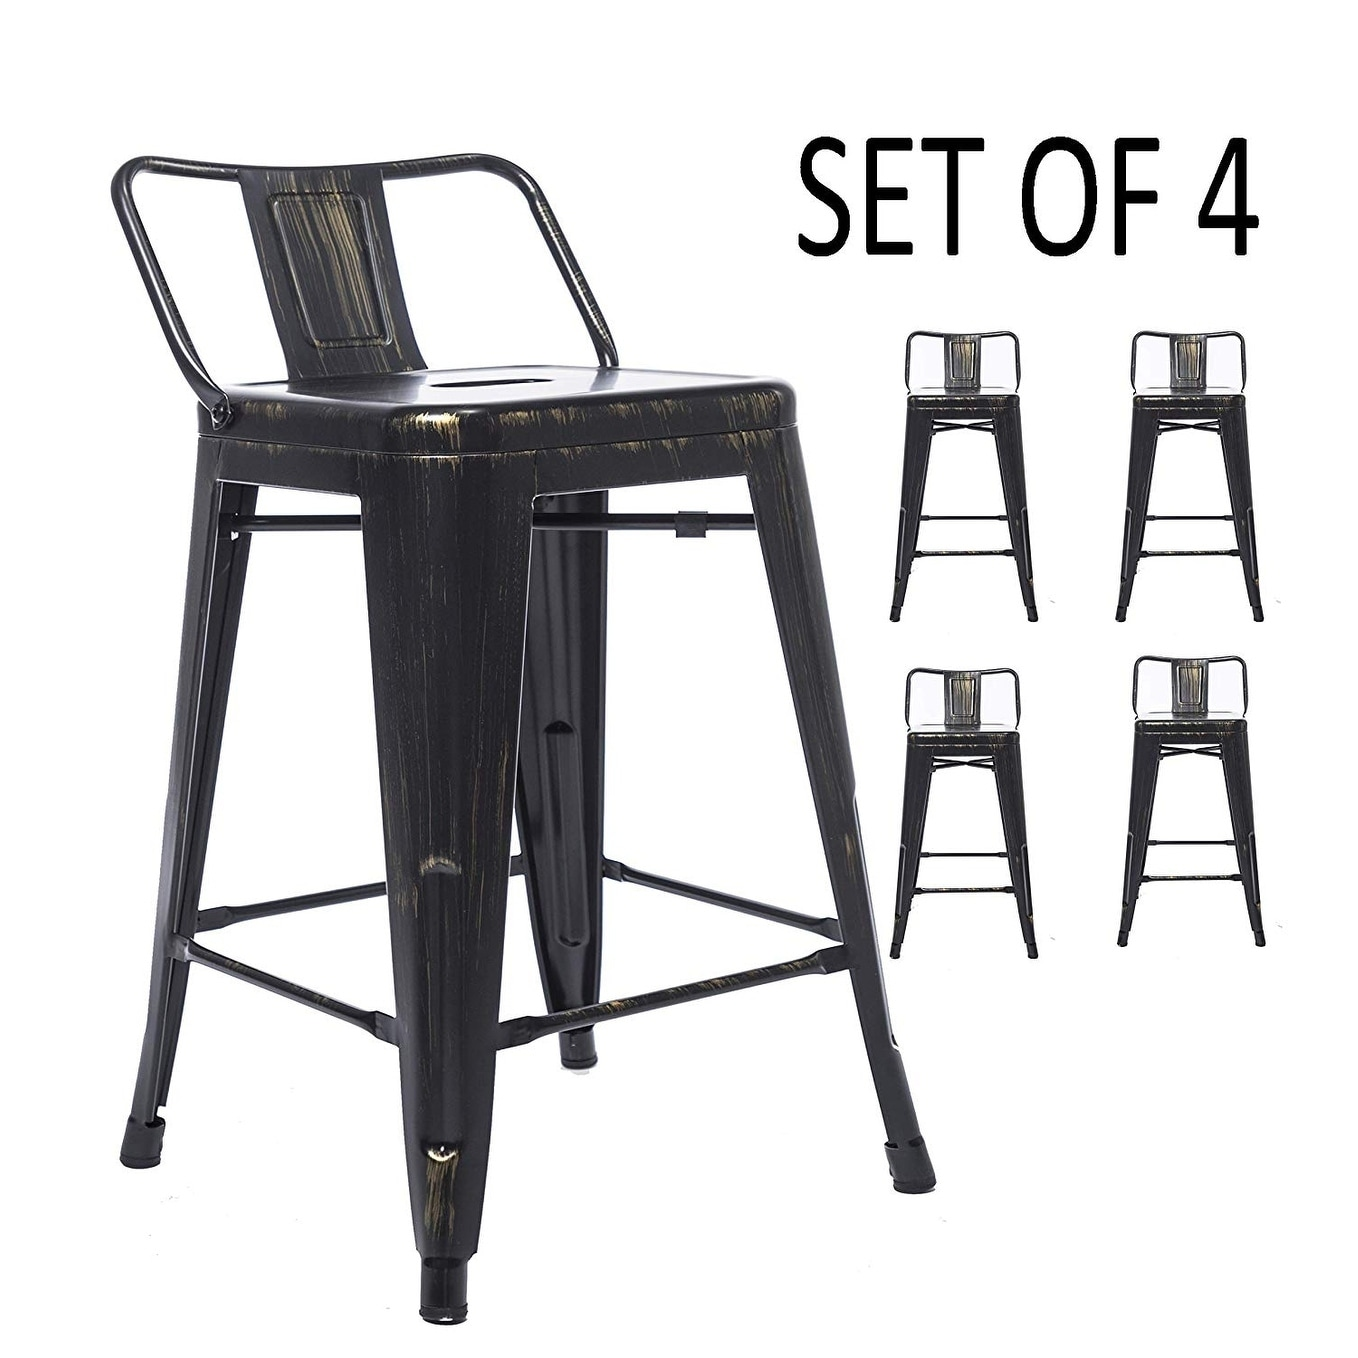 24 Inch Golden Black Distressed Kitchen Chic Indoor Outdoor Low Back Metal Counter Height Stool Set Of 4 Bar Stools